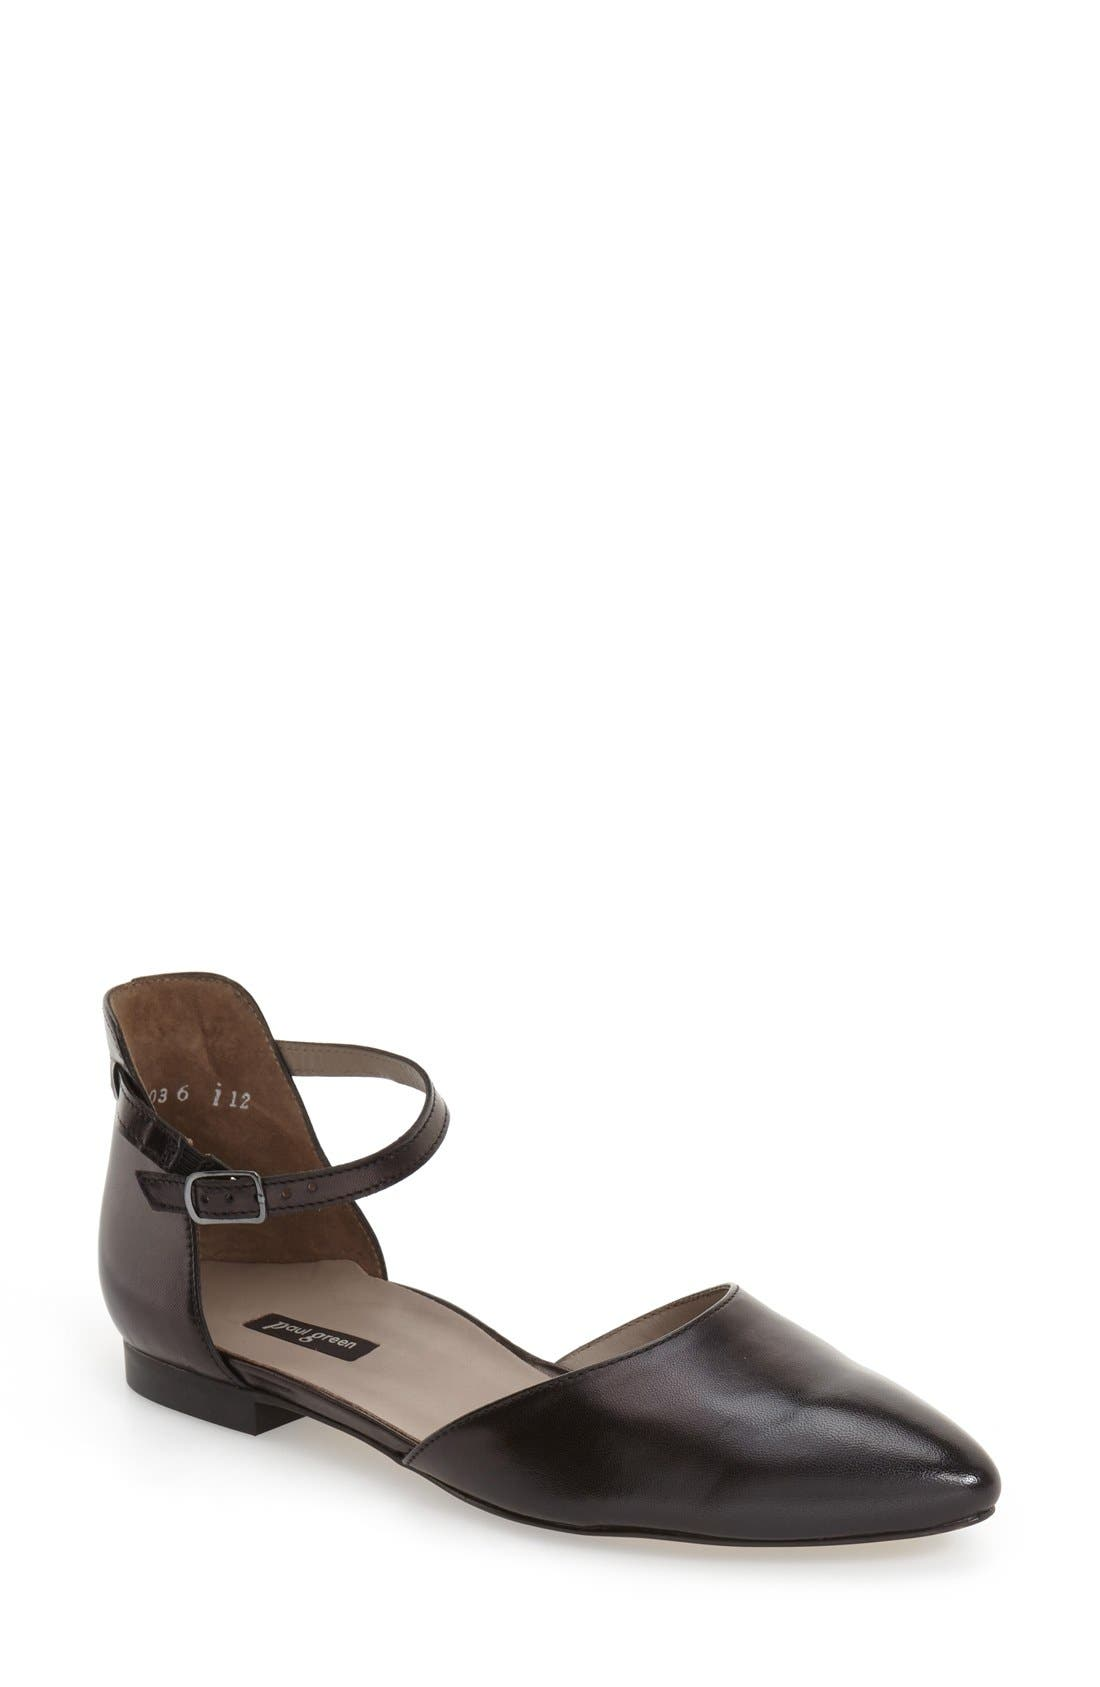 'Henly' Ankle Strap Flat, ...